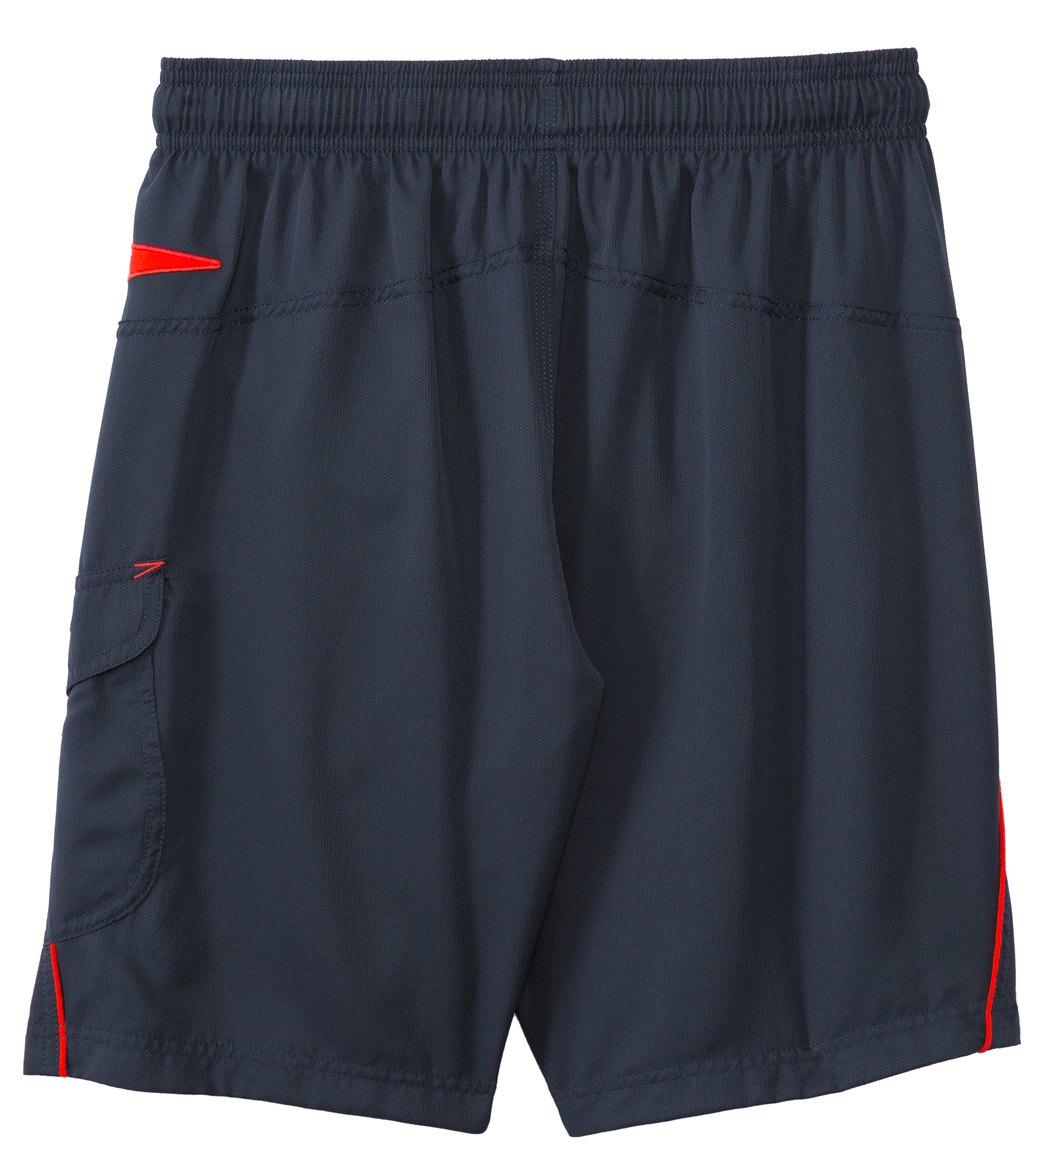 4d96d6e927 Speedo Men's Marina Volley Short 2.0 at SwimOutlet.com